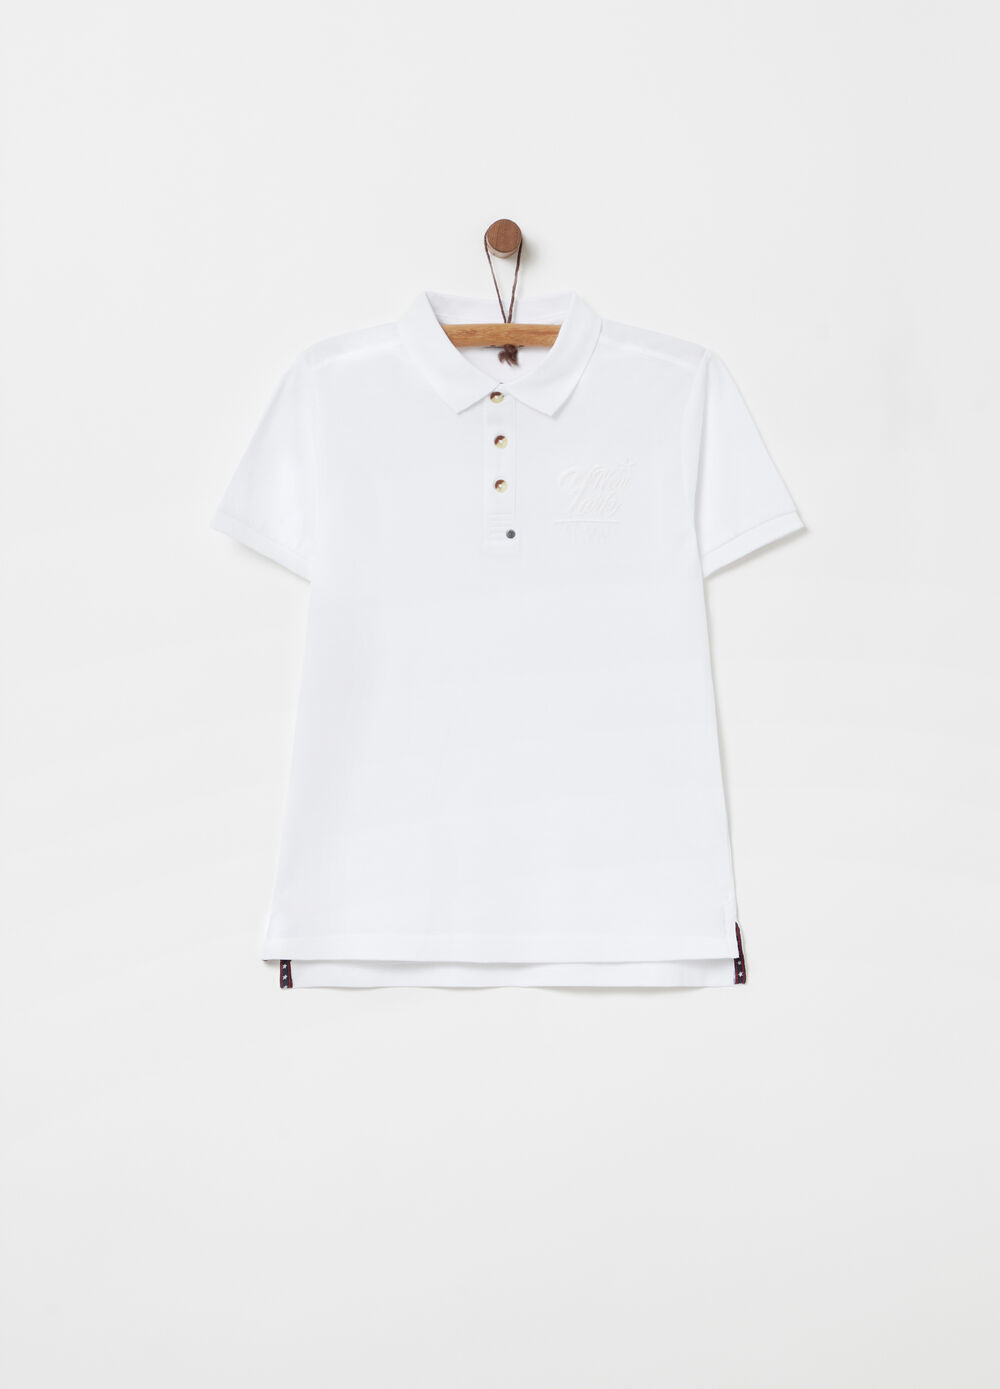 Piquet polo shirt with embroidery over the heart